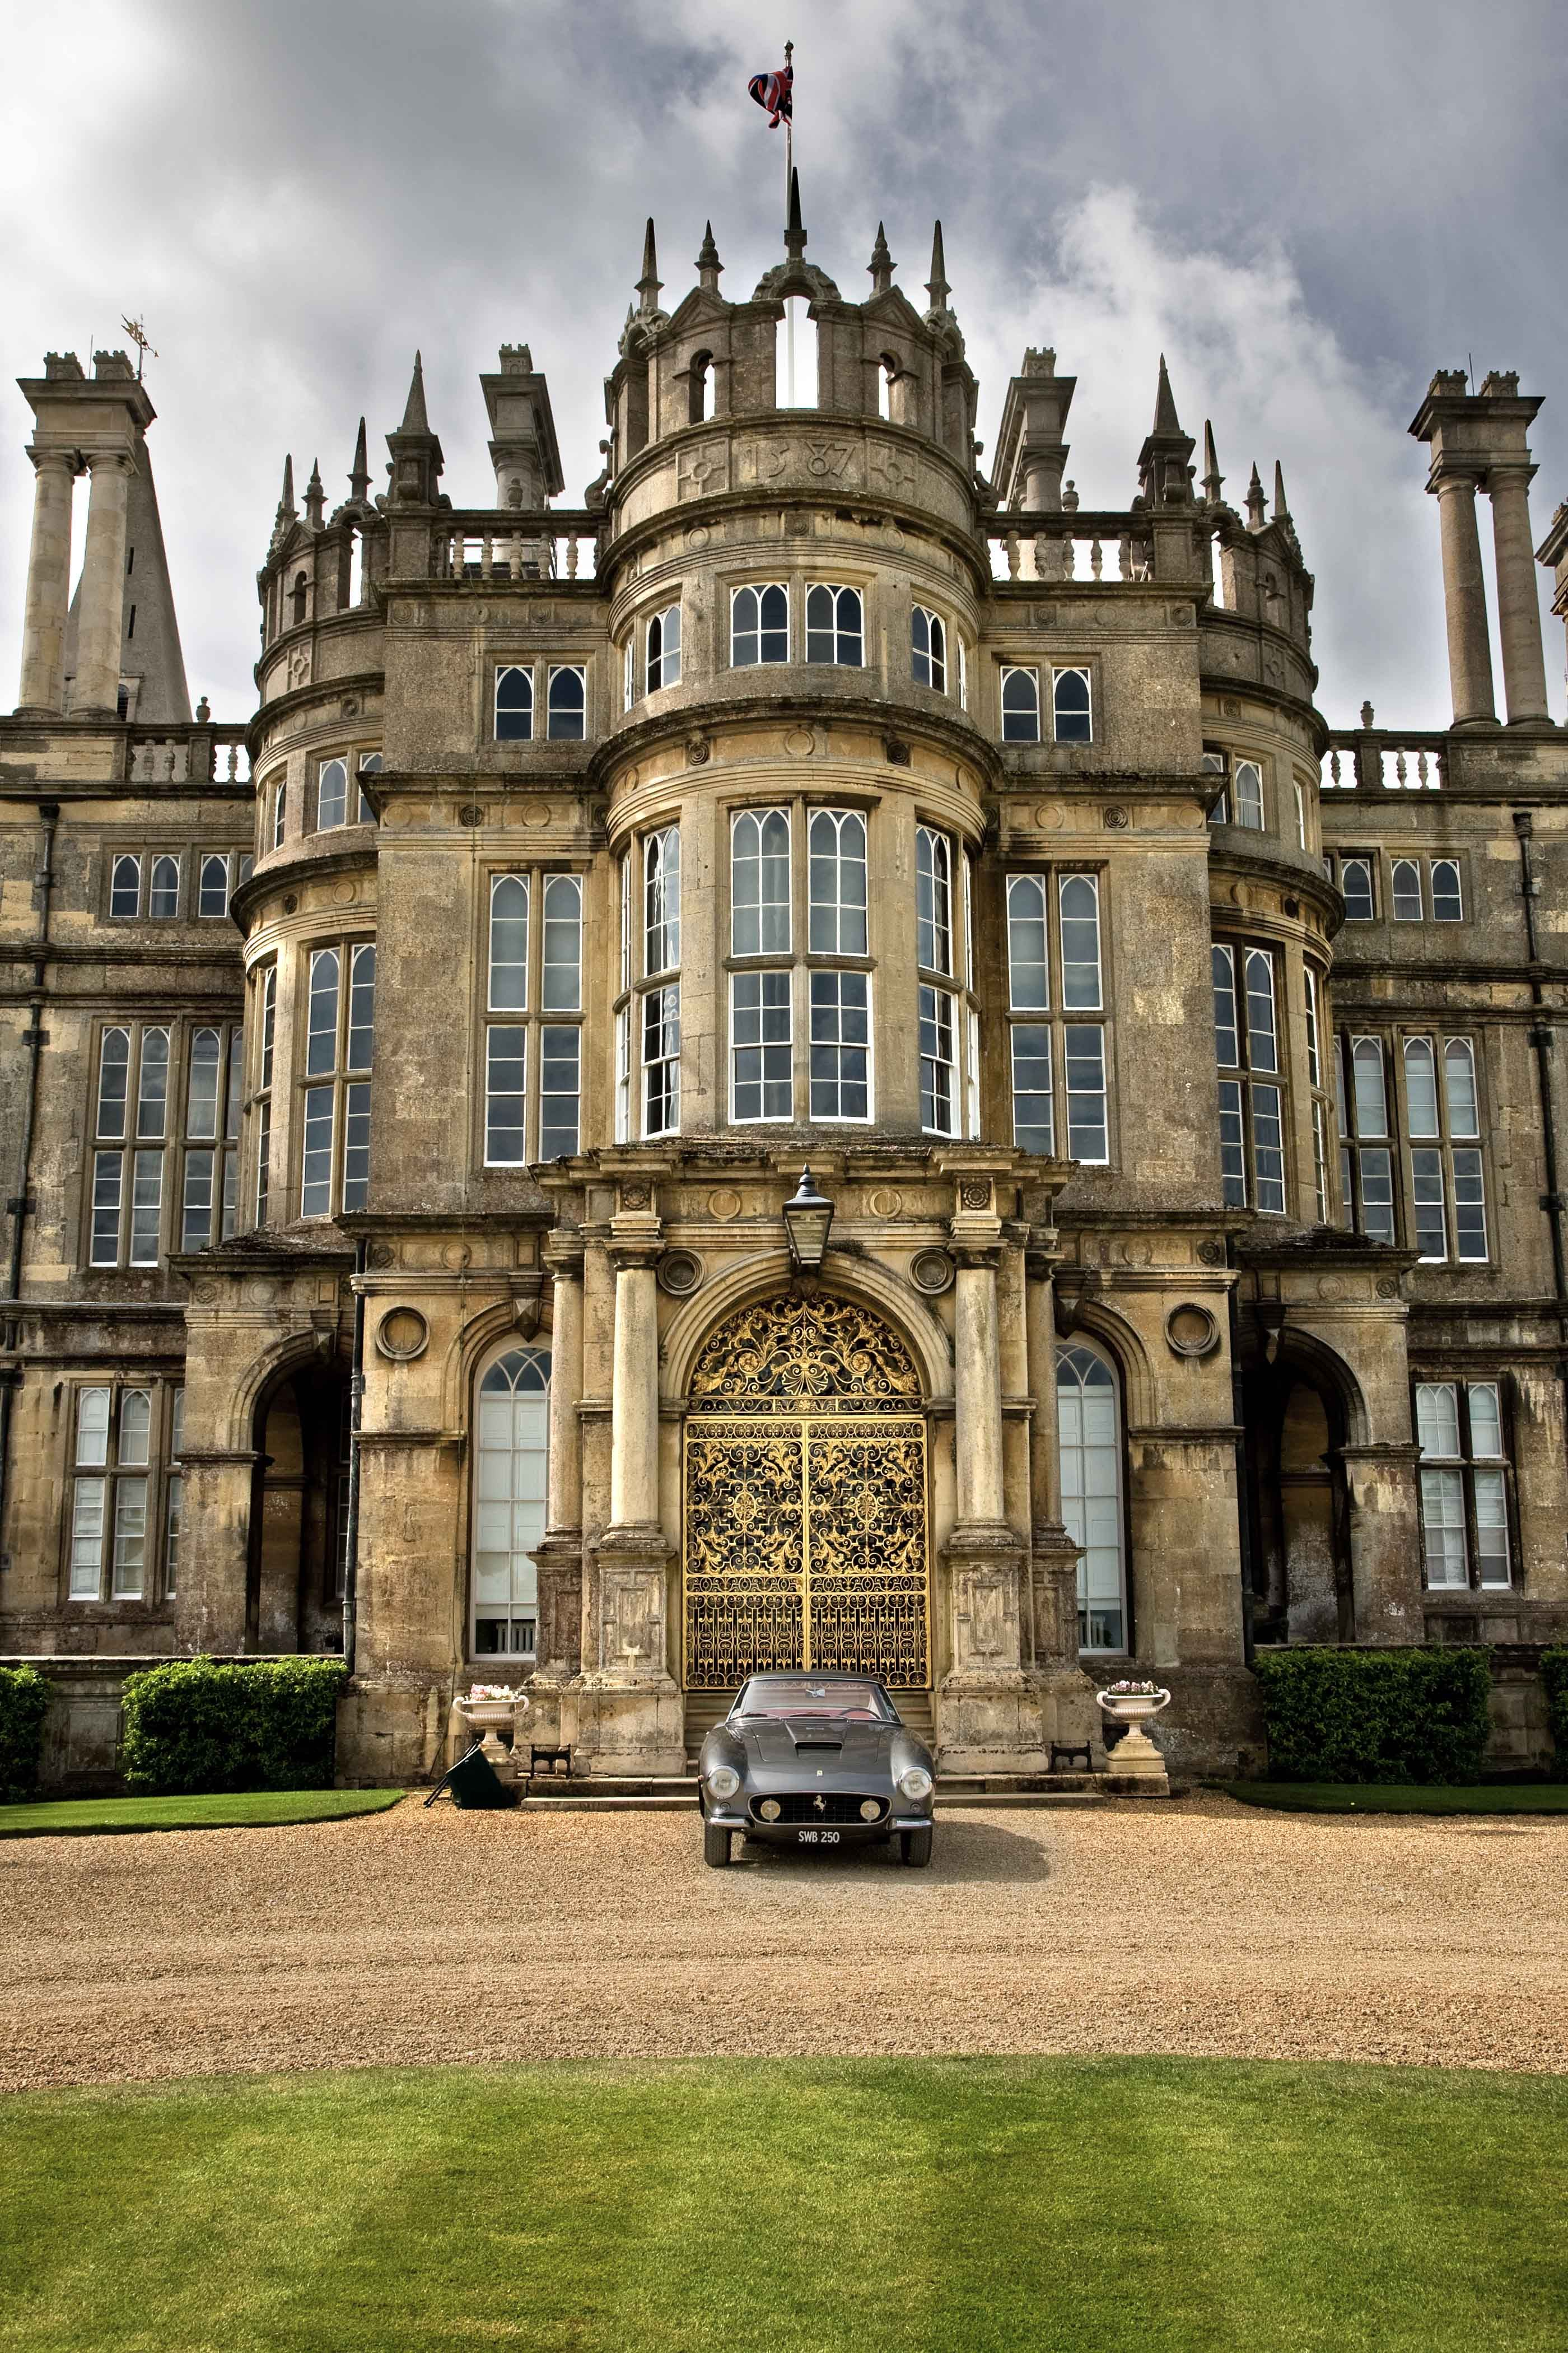 Burghley House 1587 A Grand 16th Century Country House In Cambridgeshire 0 9 Miles South Of Stamford Lincolnshire England 10 Miles Northwest Of The